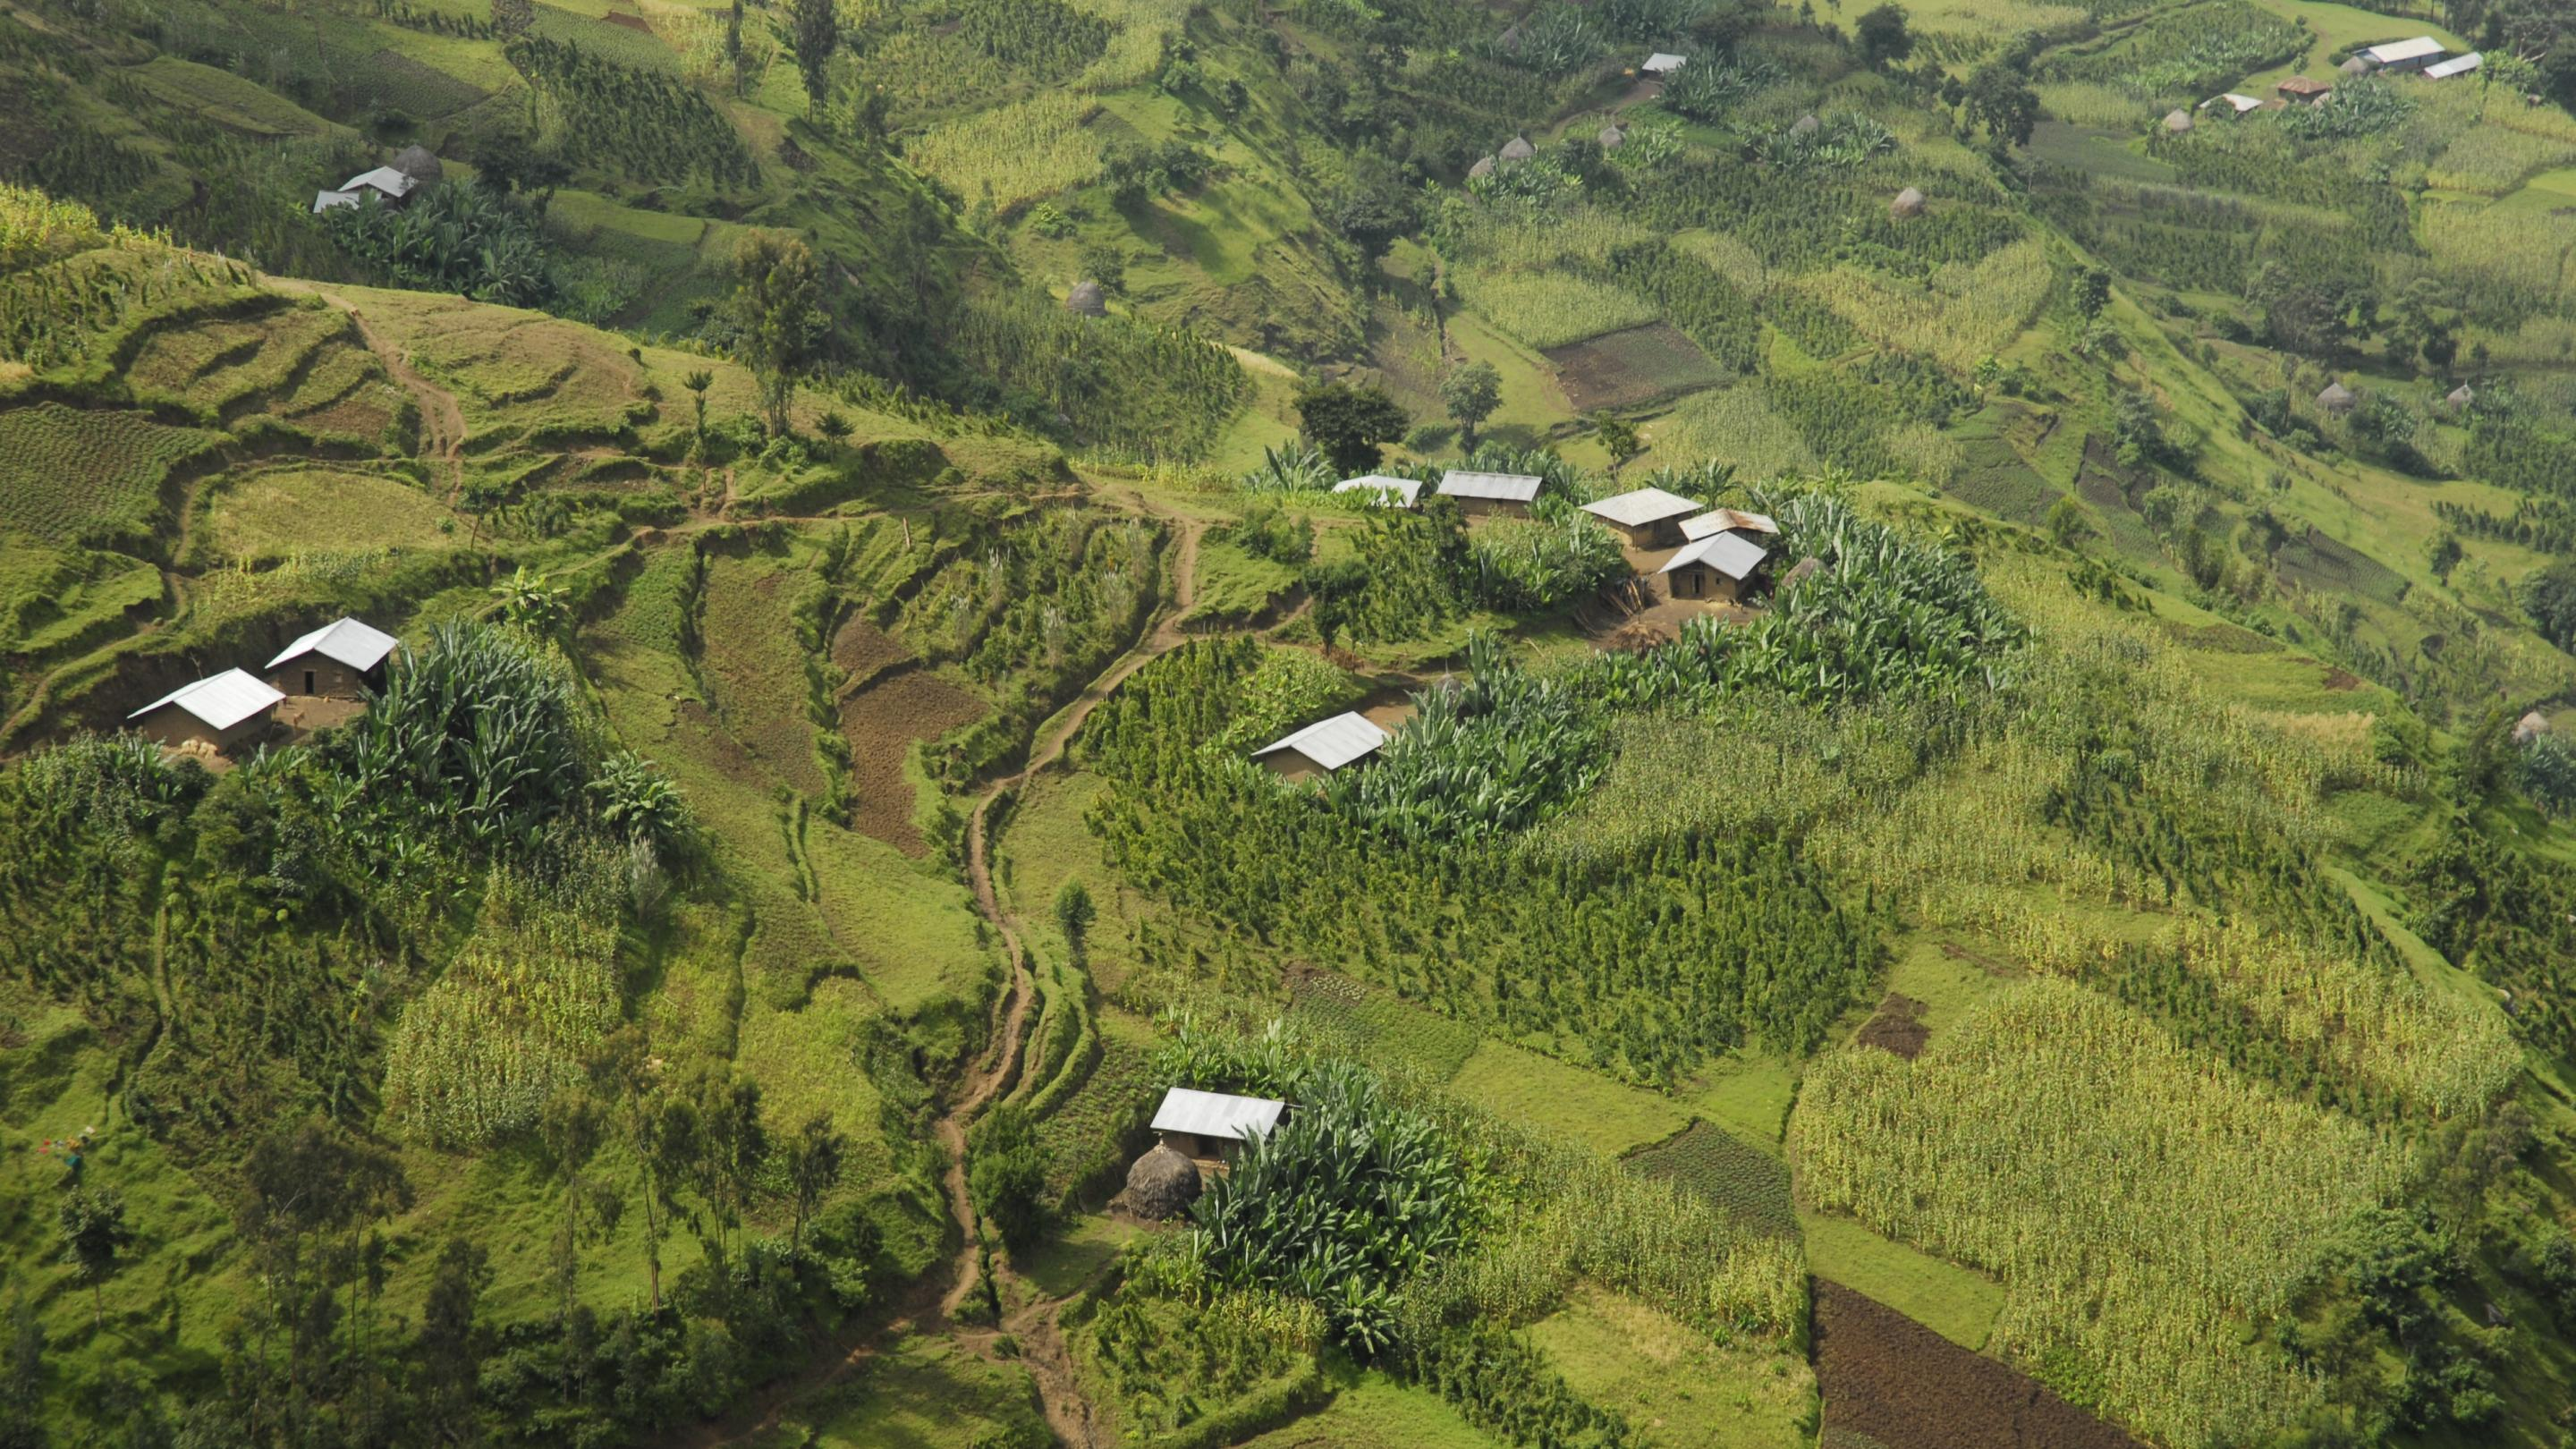 Image showing Enset in the Agri-landscape of South West Ethiopia